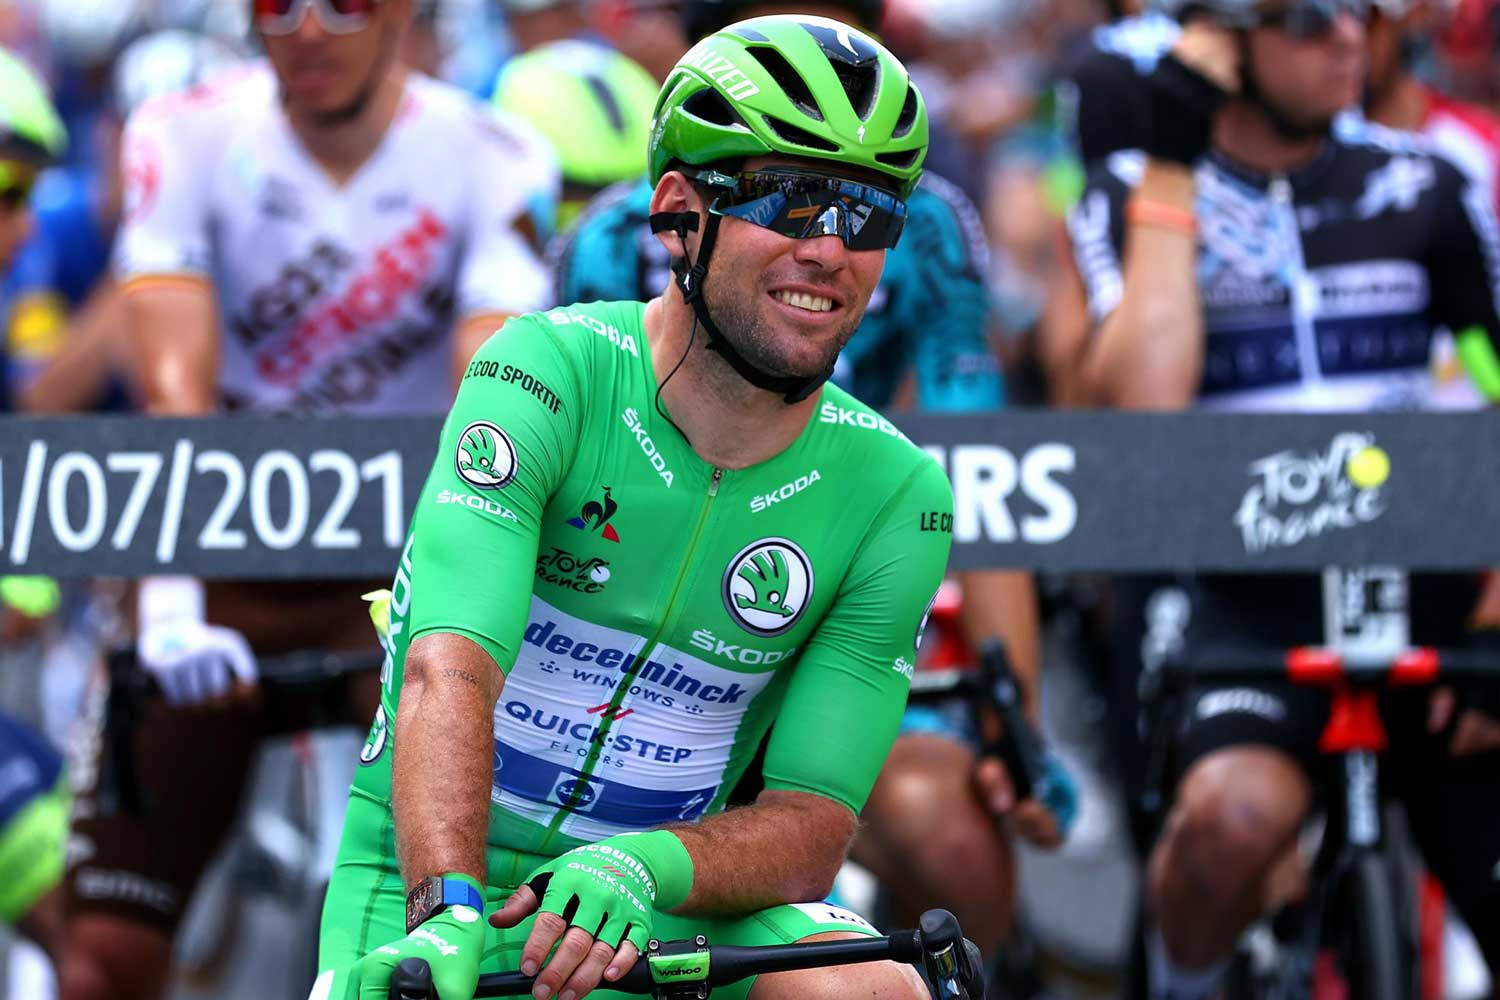 British cyclist, Mark Cavendish, who finished outside the time limit in his previous participation in 2018, crashed out in 2017, at the Tour de France 2021 with three stage victories to date and 33 career stage wins, swiftly chasing down Eddy Merckx's record of 34 (Image: eurosport.com)(